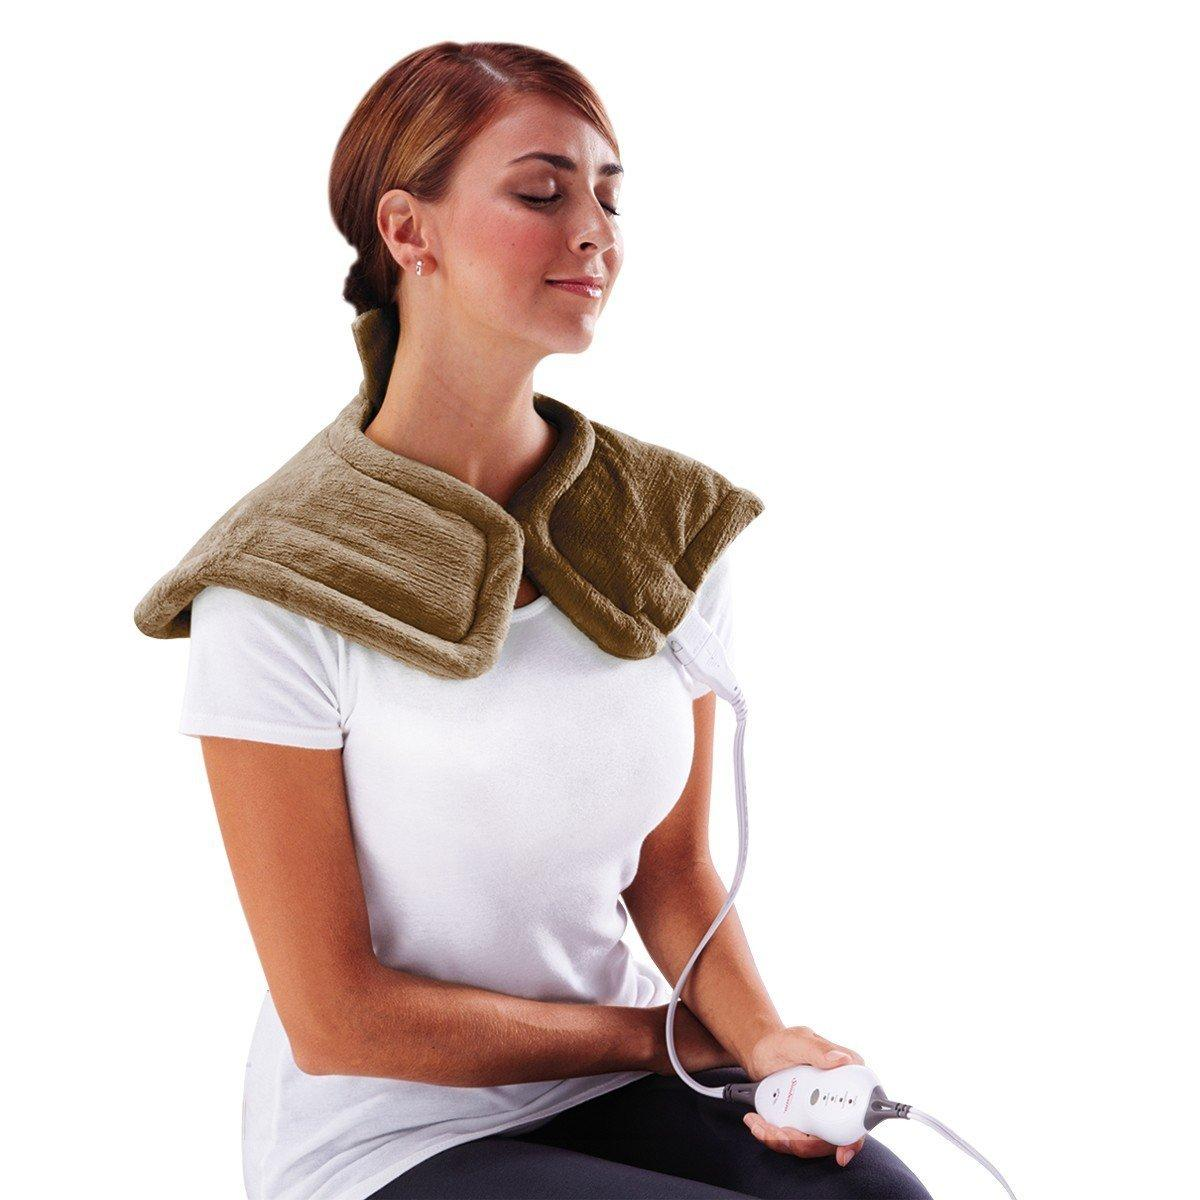 Sunbeam Renue Tension Relief Heating Pad, Brown